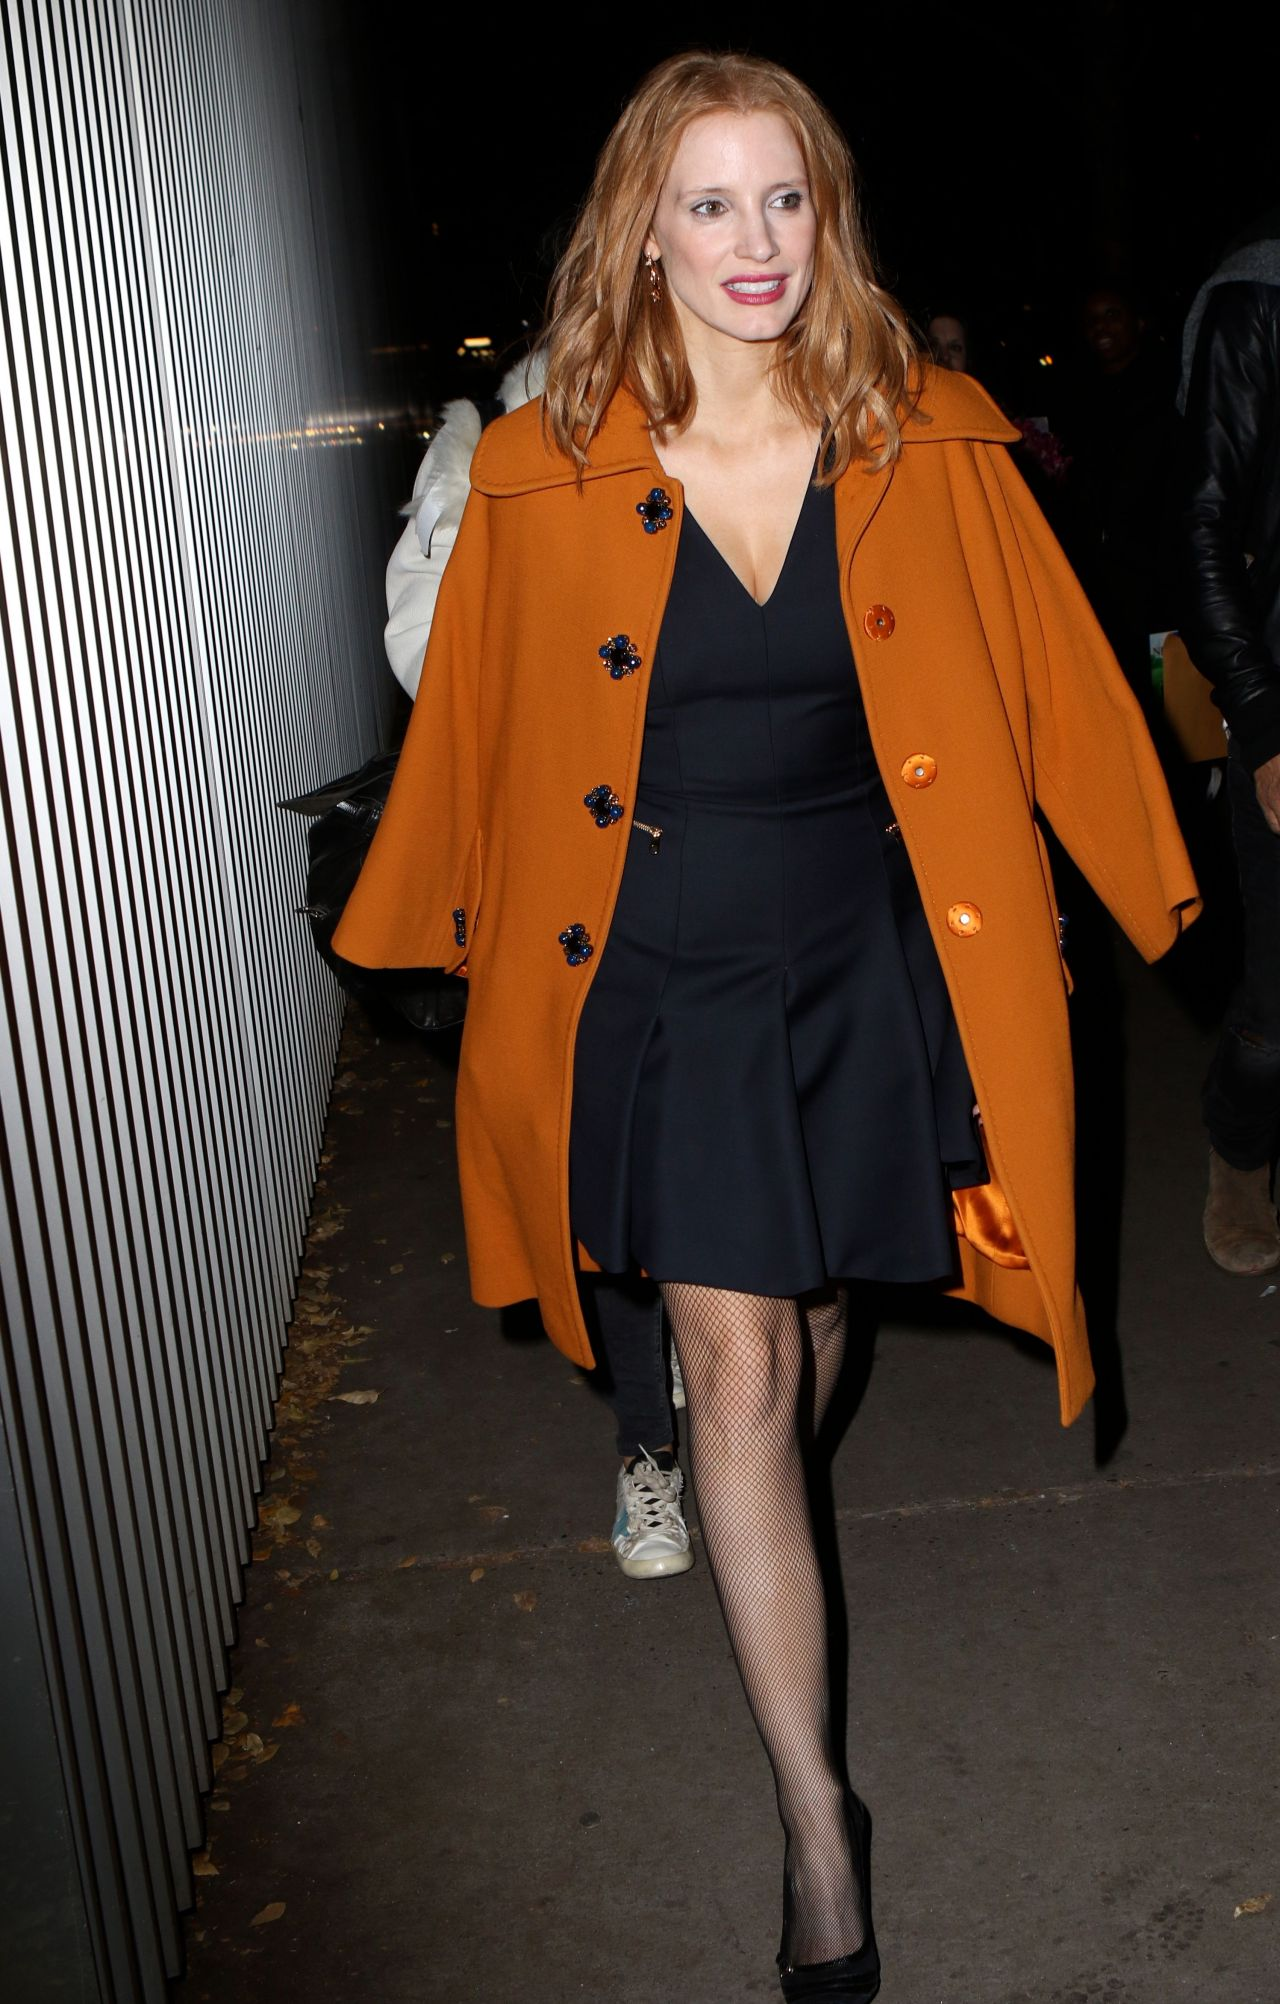 Jessica Chastain at Miss Sloane Screening at The Moma in